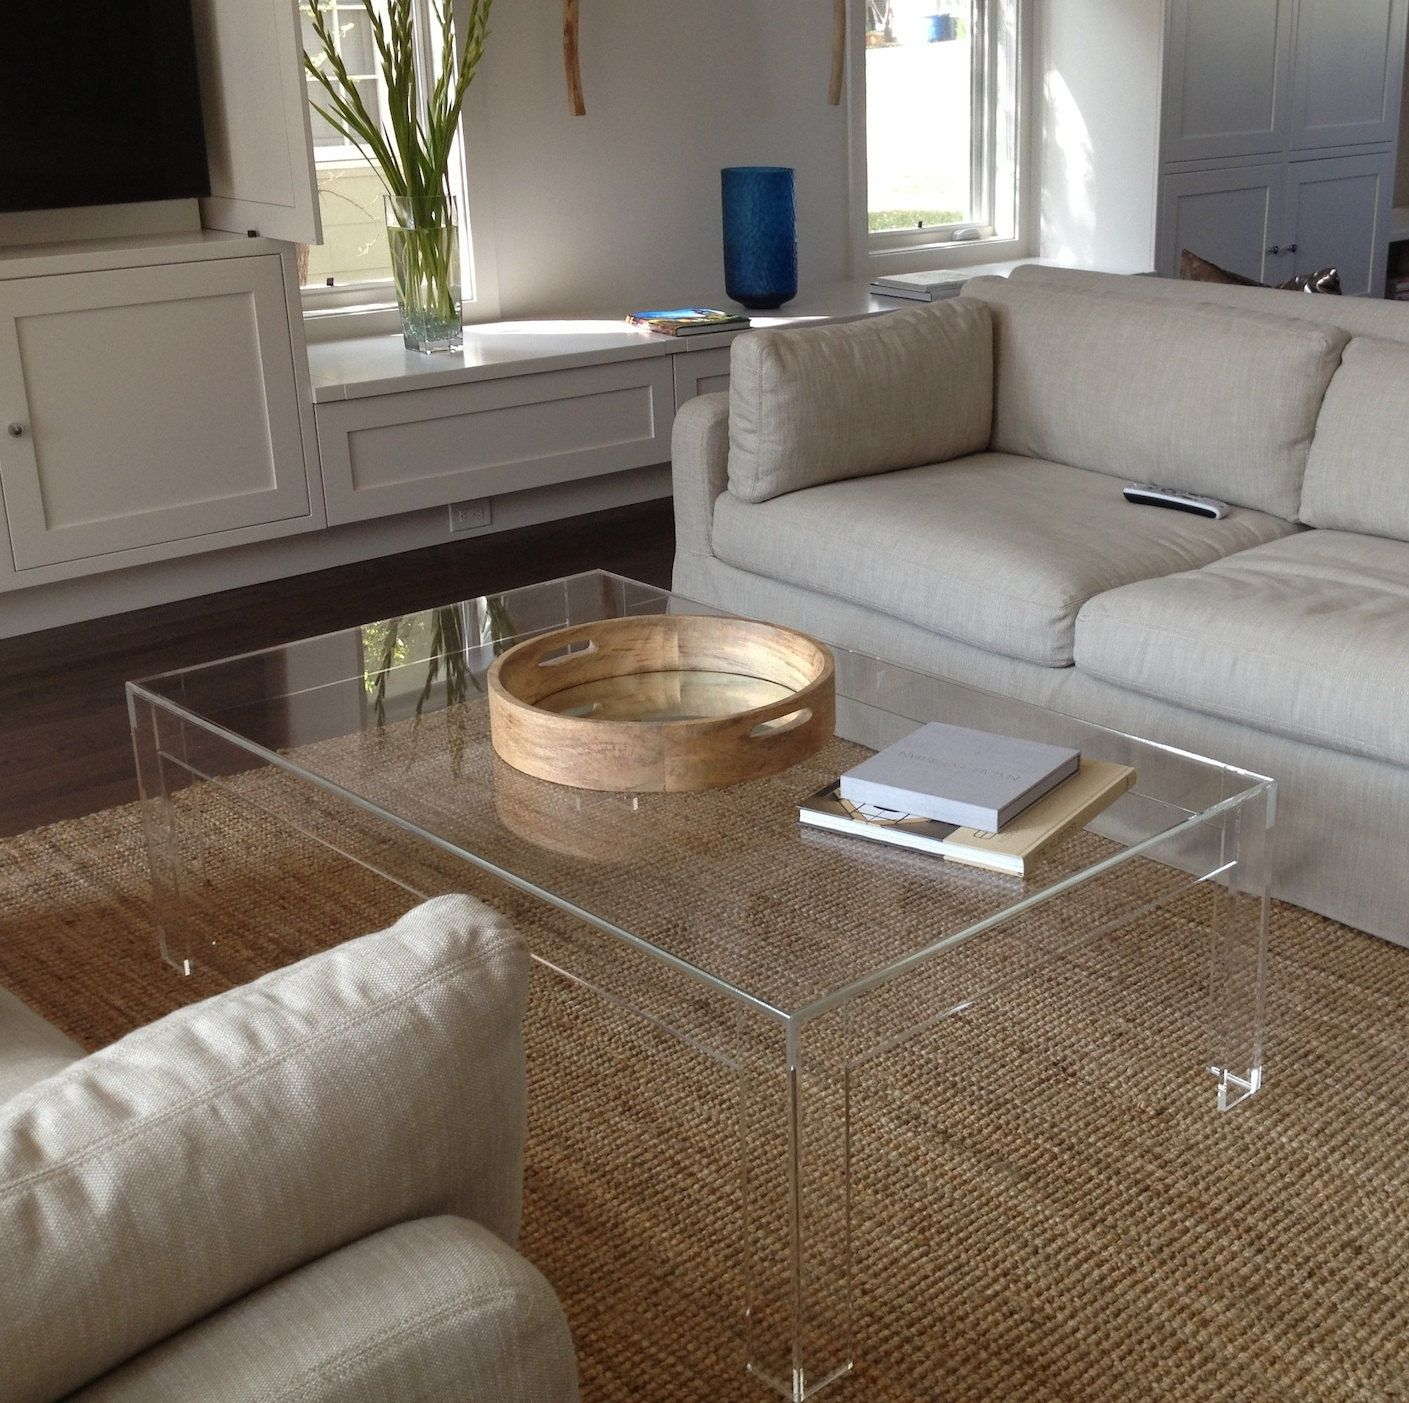 must see acrylic coffee tables for transparent display living plexiglass end room table furniture lucite rectangle wood nic tree stump diy unfinished island counter height kitchen